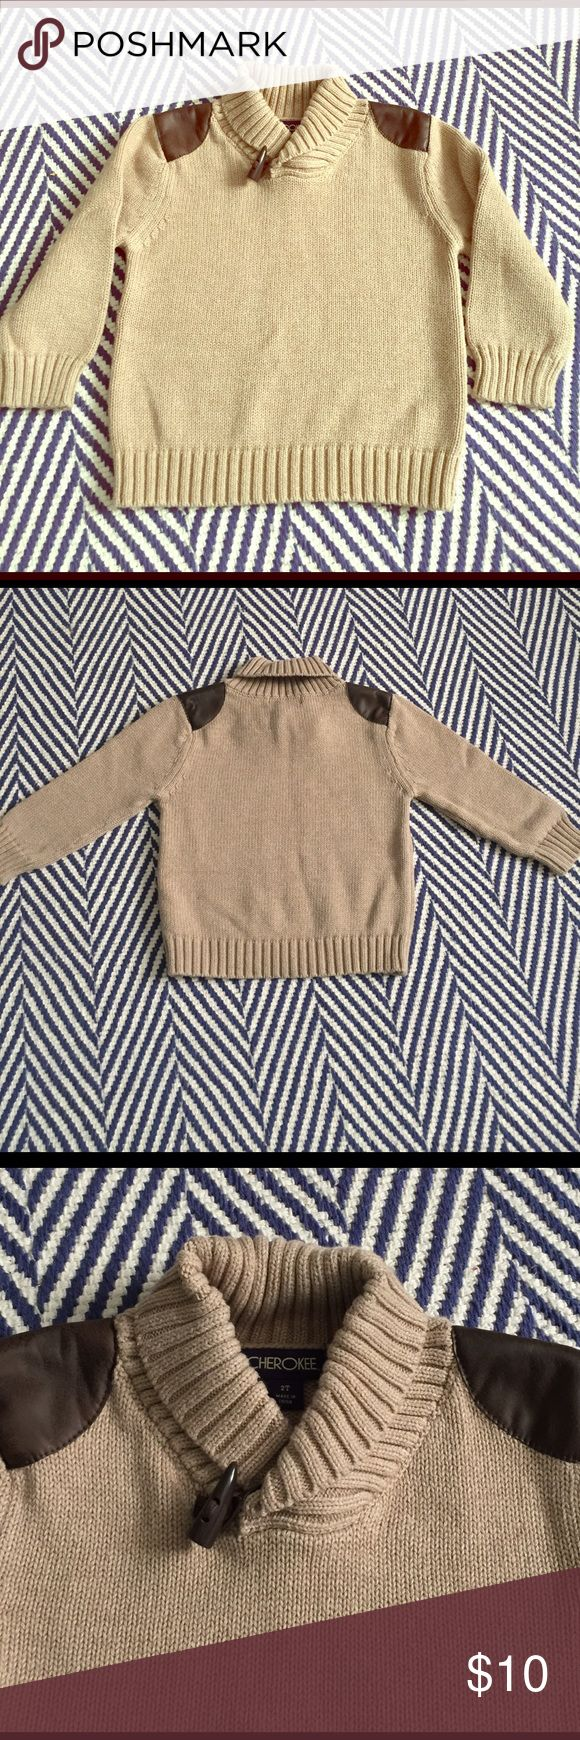 Boys Cherokee sweater Adorable Cherokee brand sweater. Light brown-tan color with dark brown leather-like material on shoulders . Only worn once and in excellent condition. Size 2T. Cherokee Shirts & Tops Sweaters